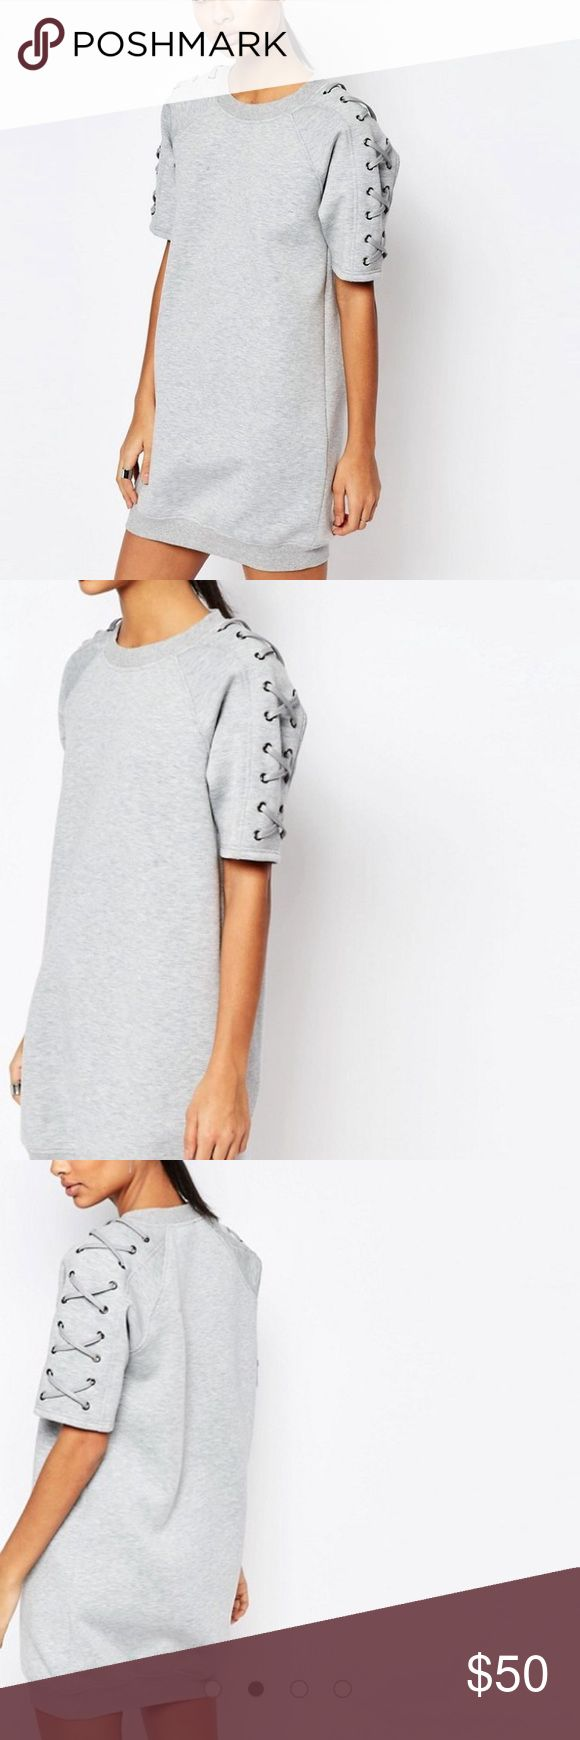 NWT ASOS sweat dress Sold out online. Brand new neoprene sweat dress with lace up detail. Oversized and super cute. Size is S/M. Brand is Story of Lola but sold at ASOS. ASOS Dresses